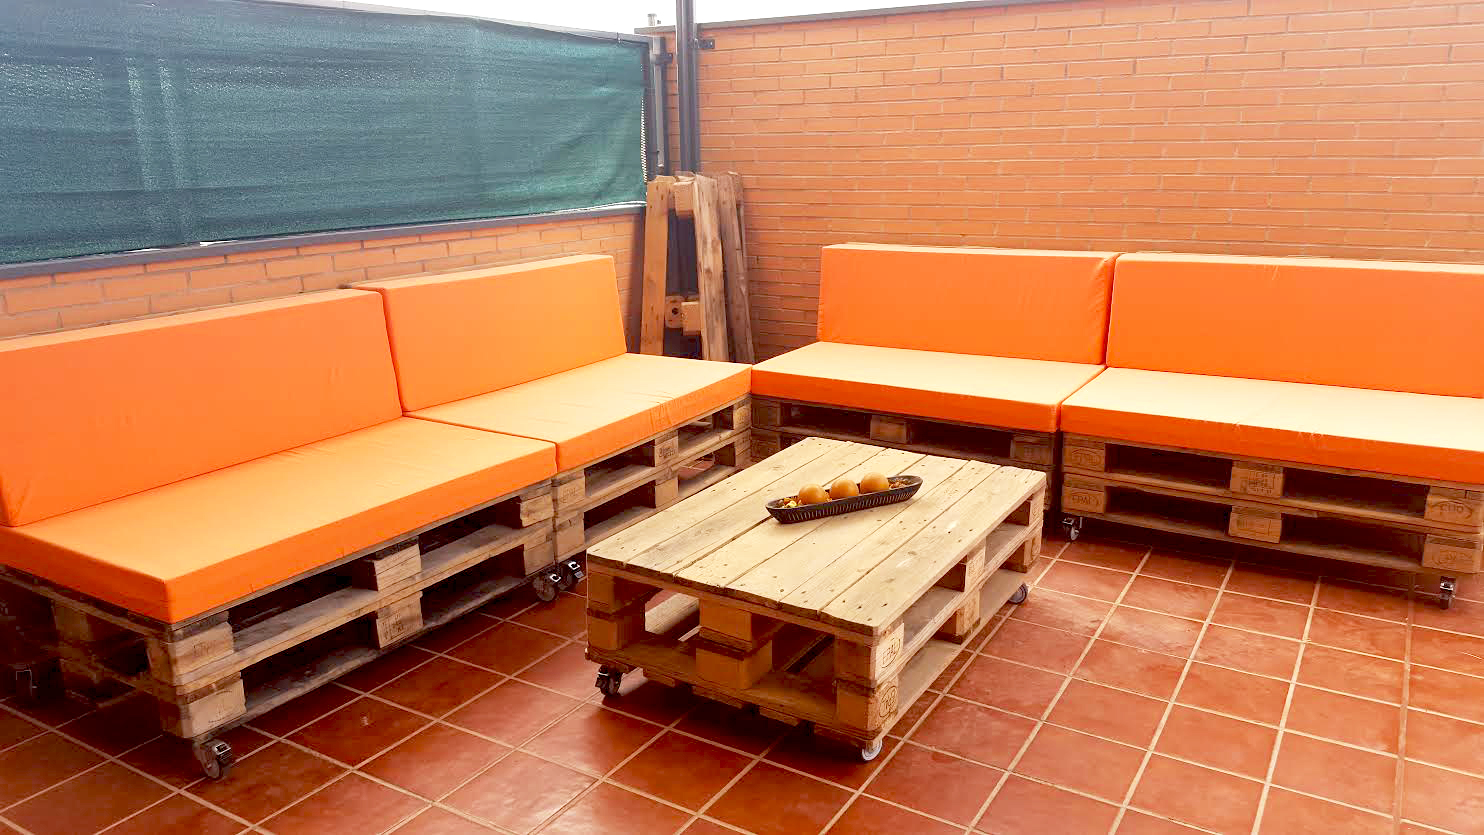 Hazte una zona chill out con palets vivienda saludable - Muebles chill out ...